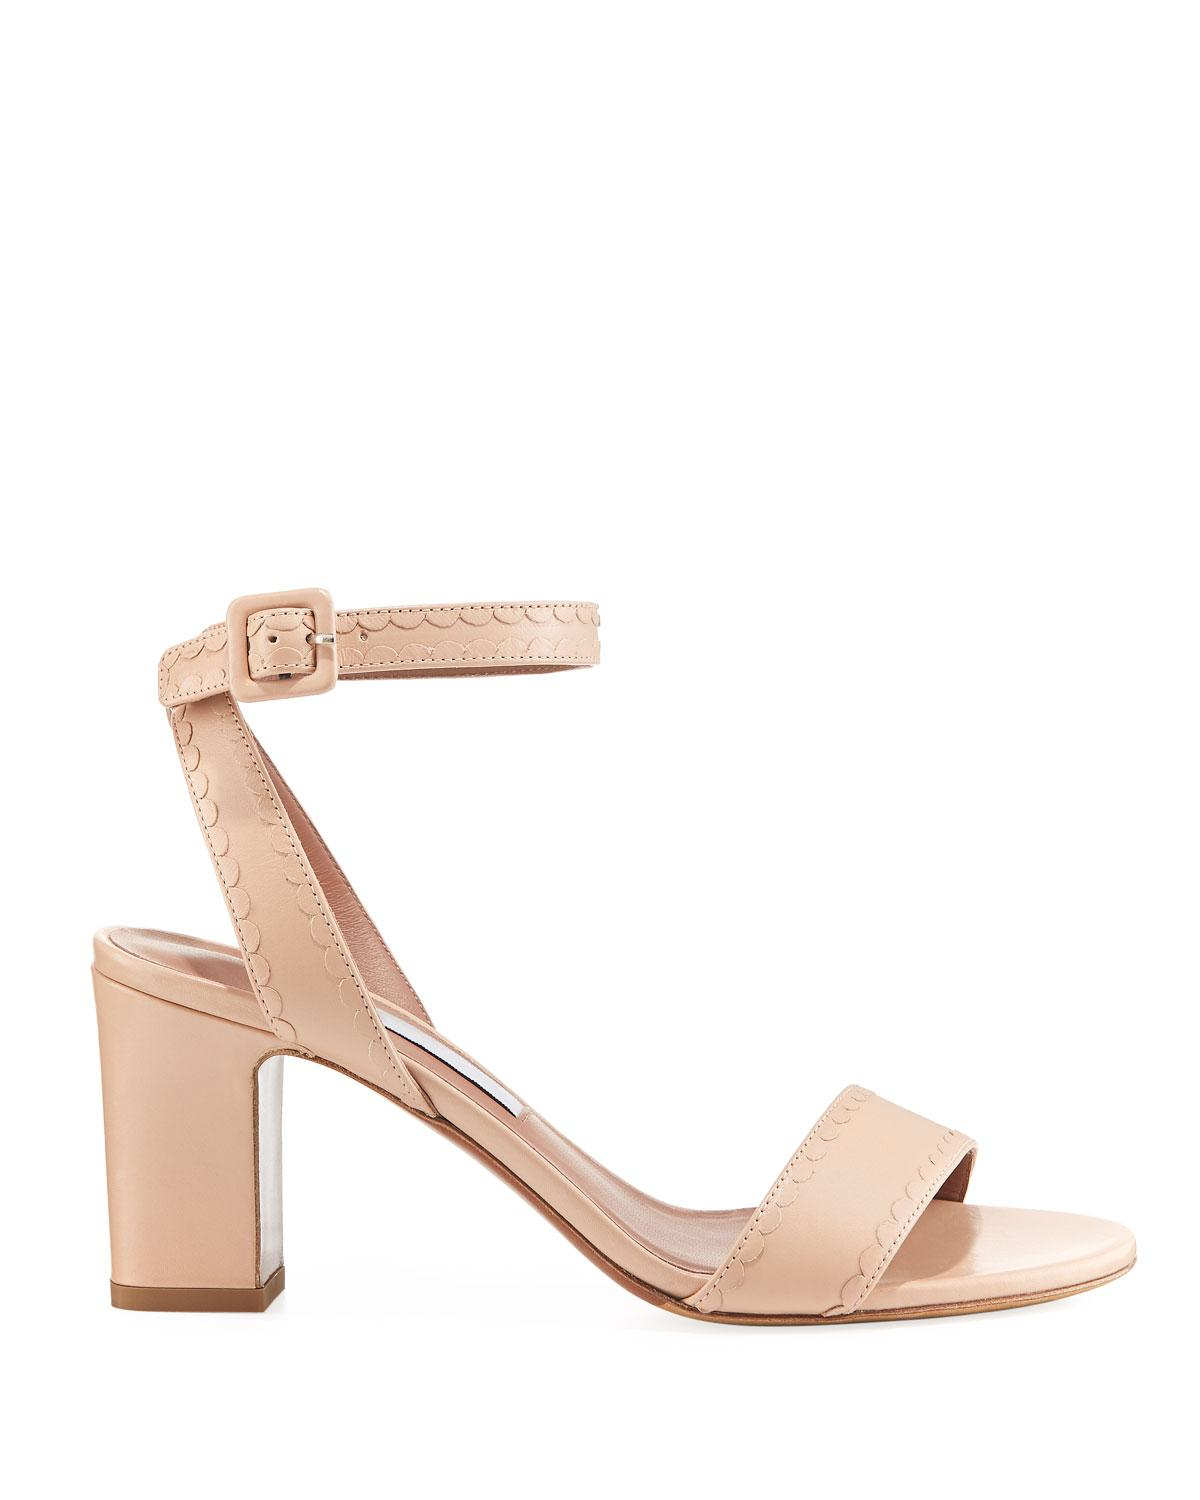 fad5be53817 Lyst - Tabitha Simmons Leticia Scalloped Leather Sandal in Natural